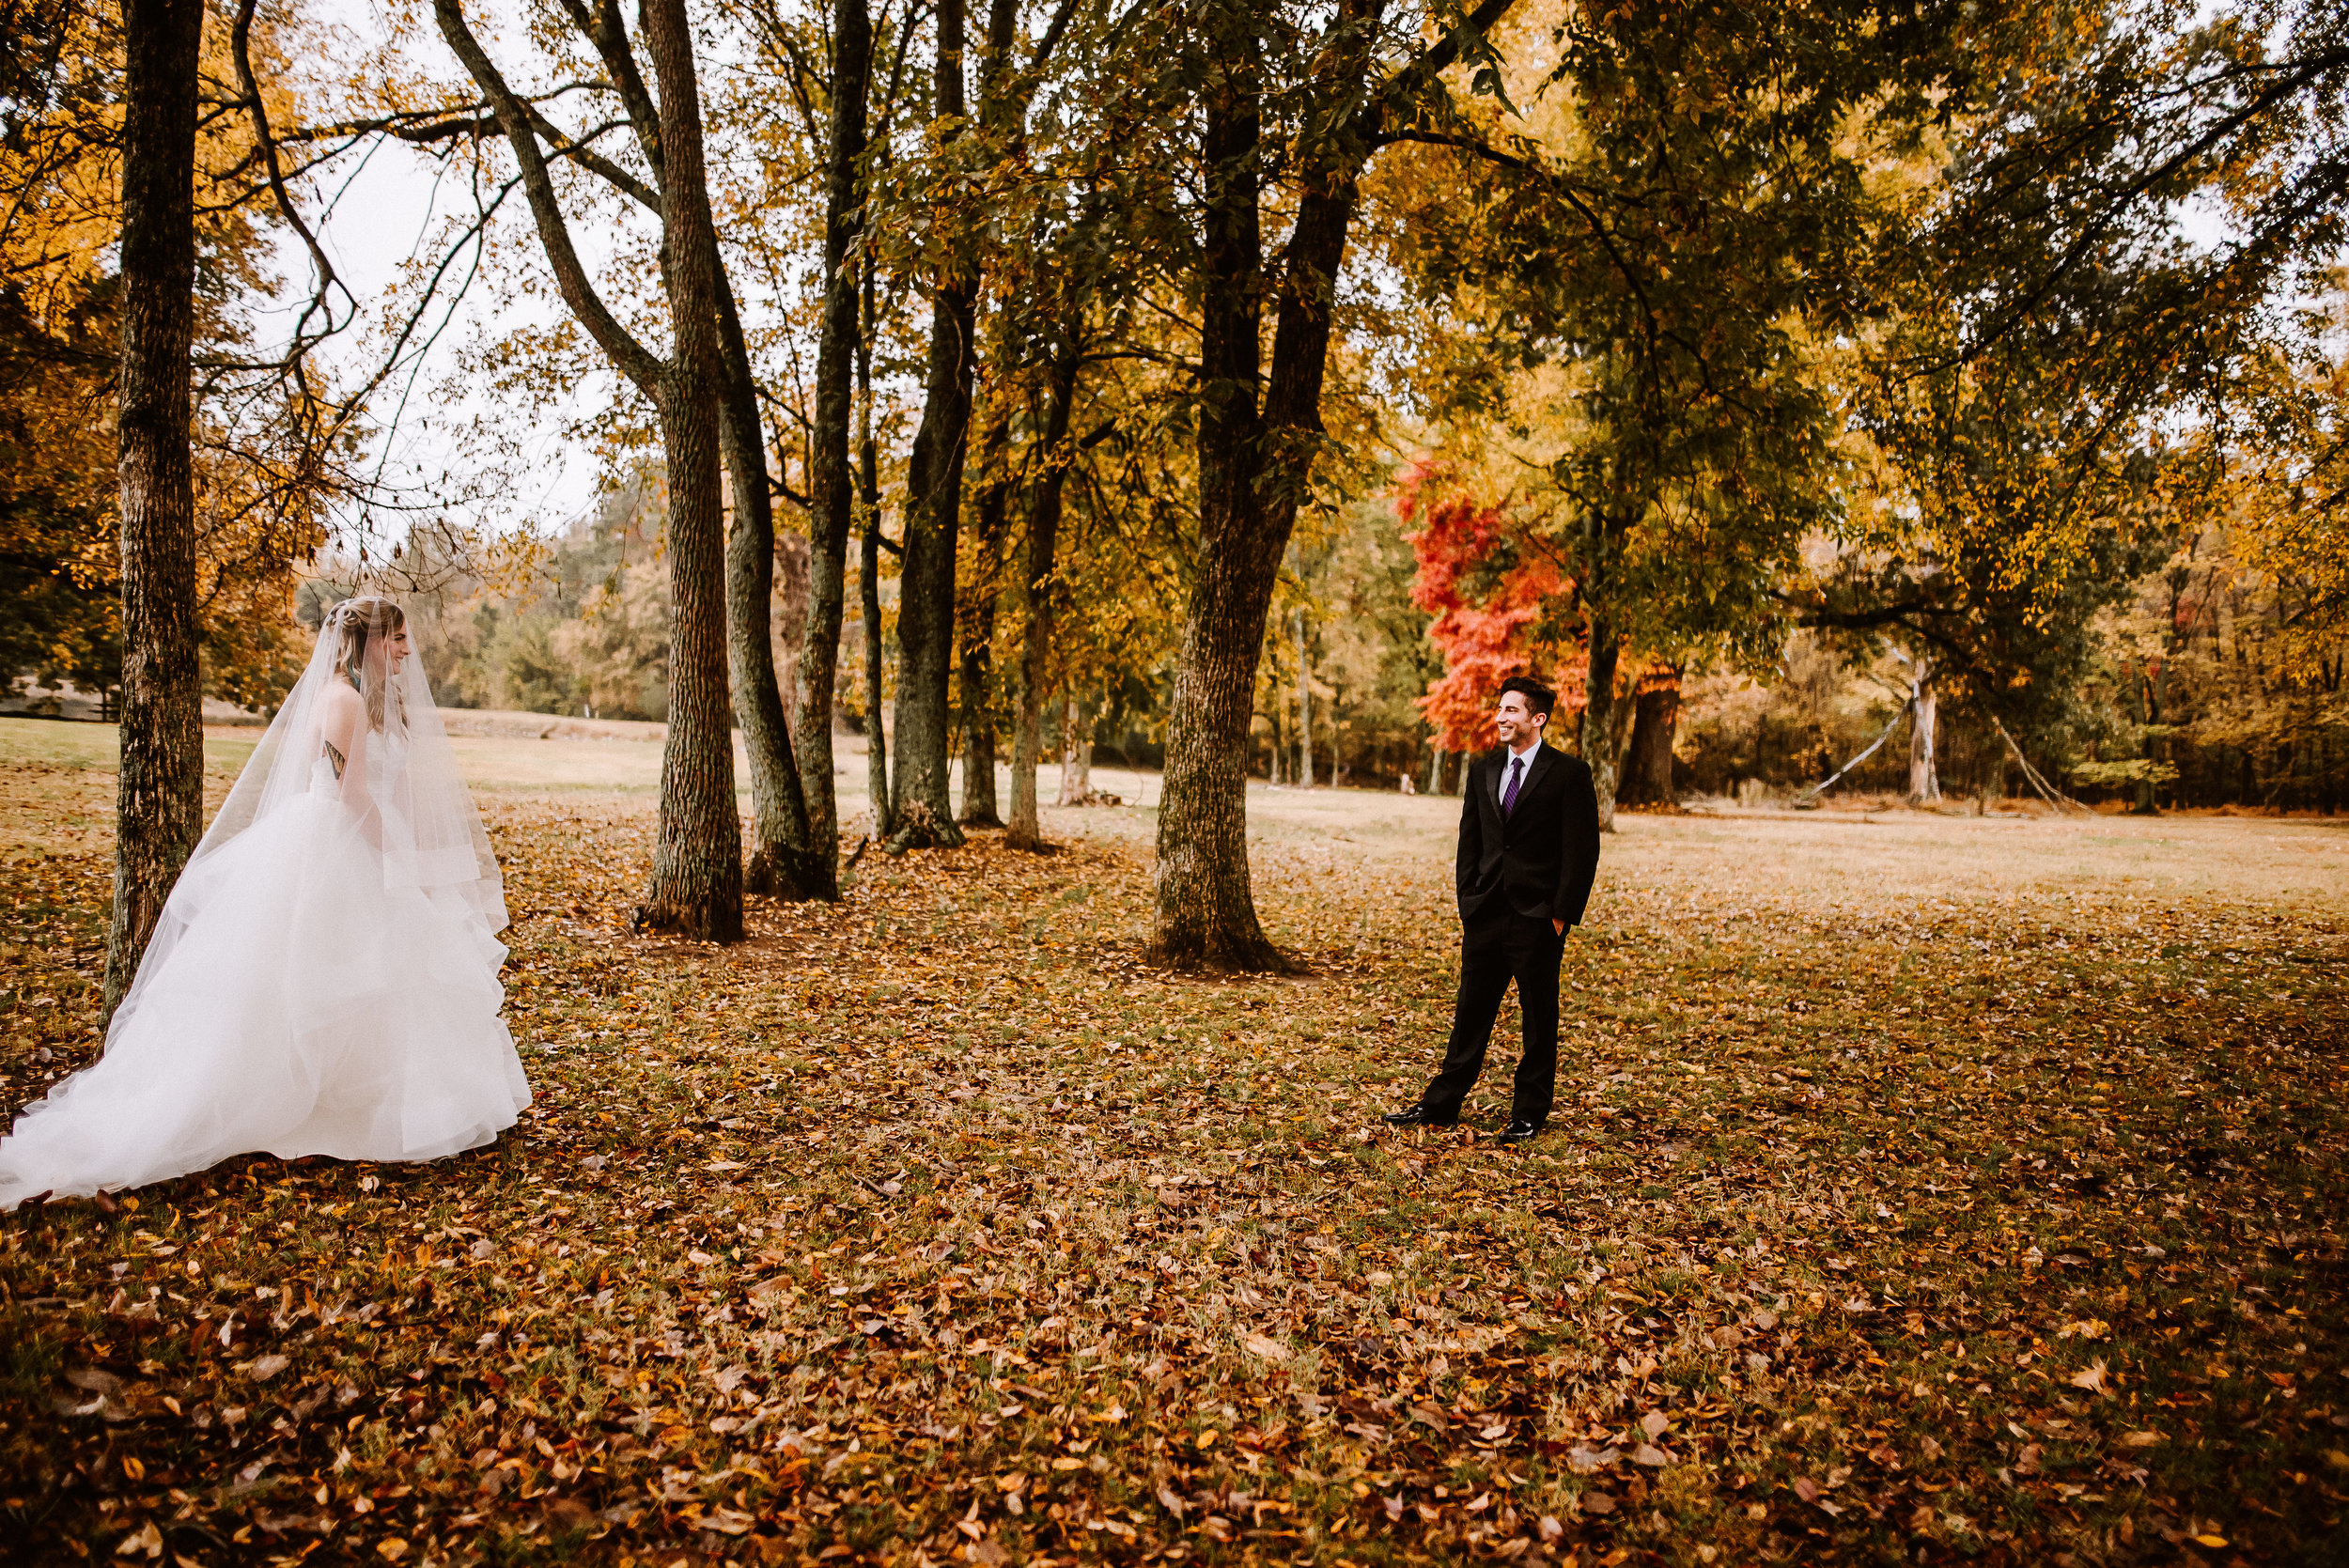 Lucchesi-Wedding_Shelby-Farms_Ashley-Benham-Photography-123.jpg